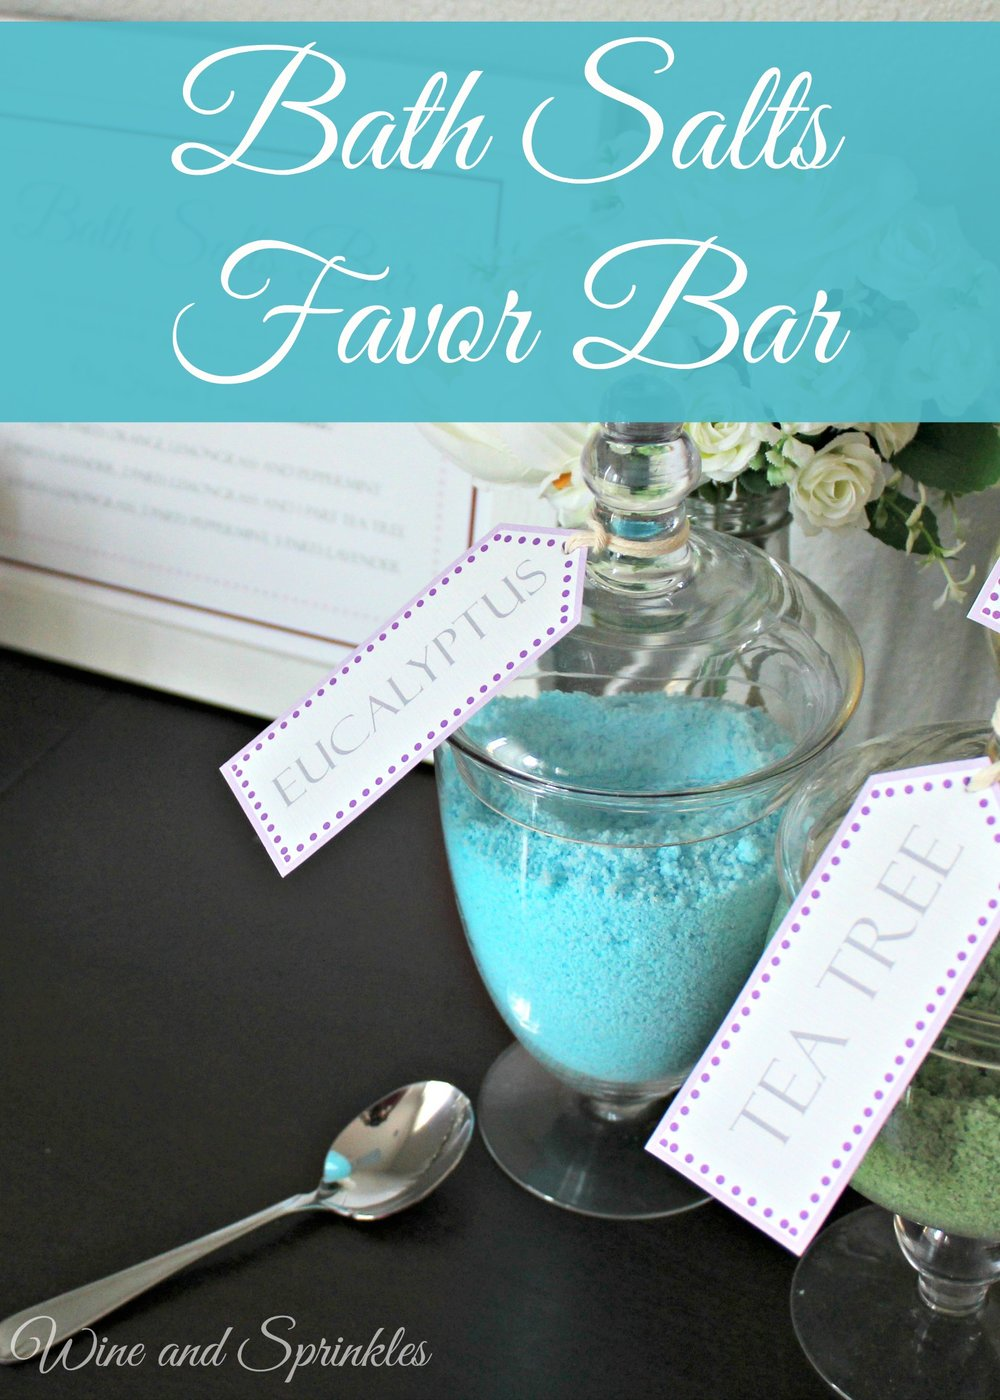 Bath Salts Favor Bar Title.jpg